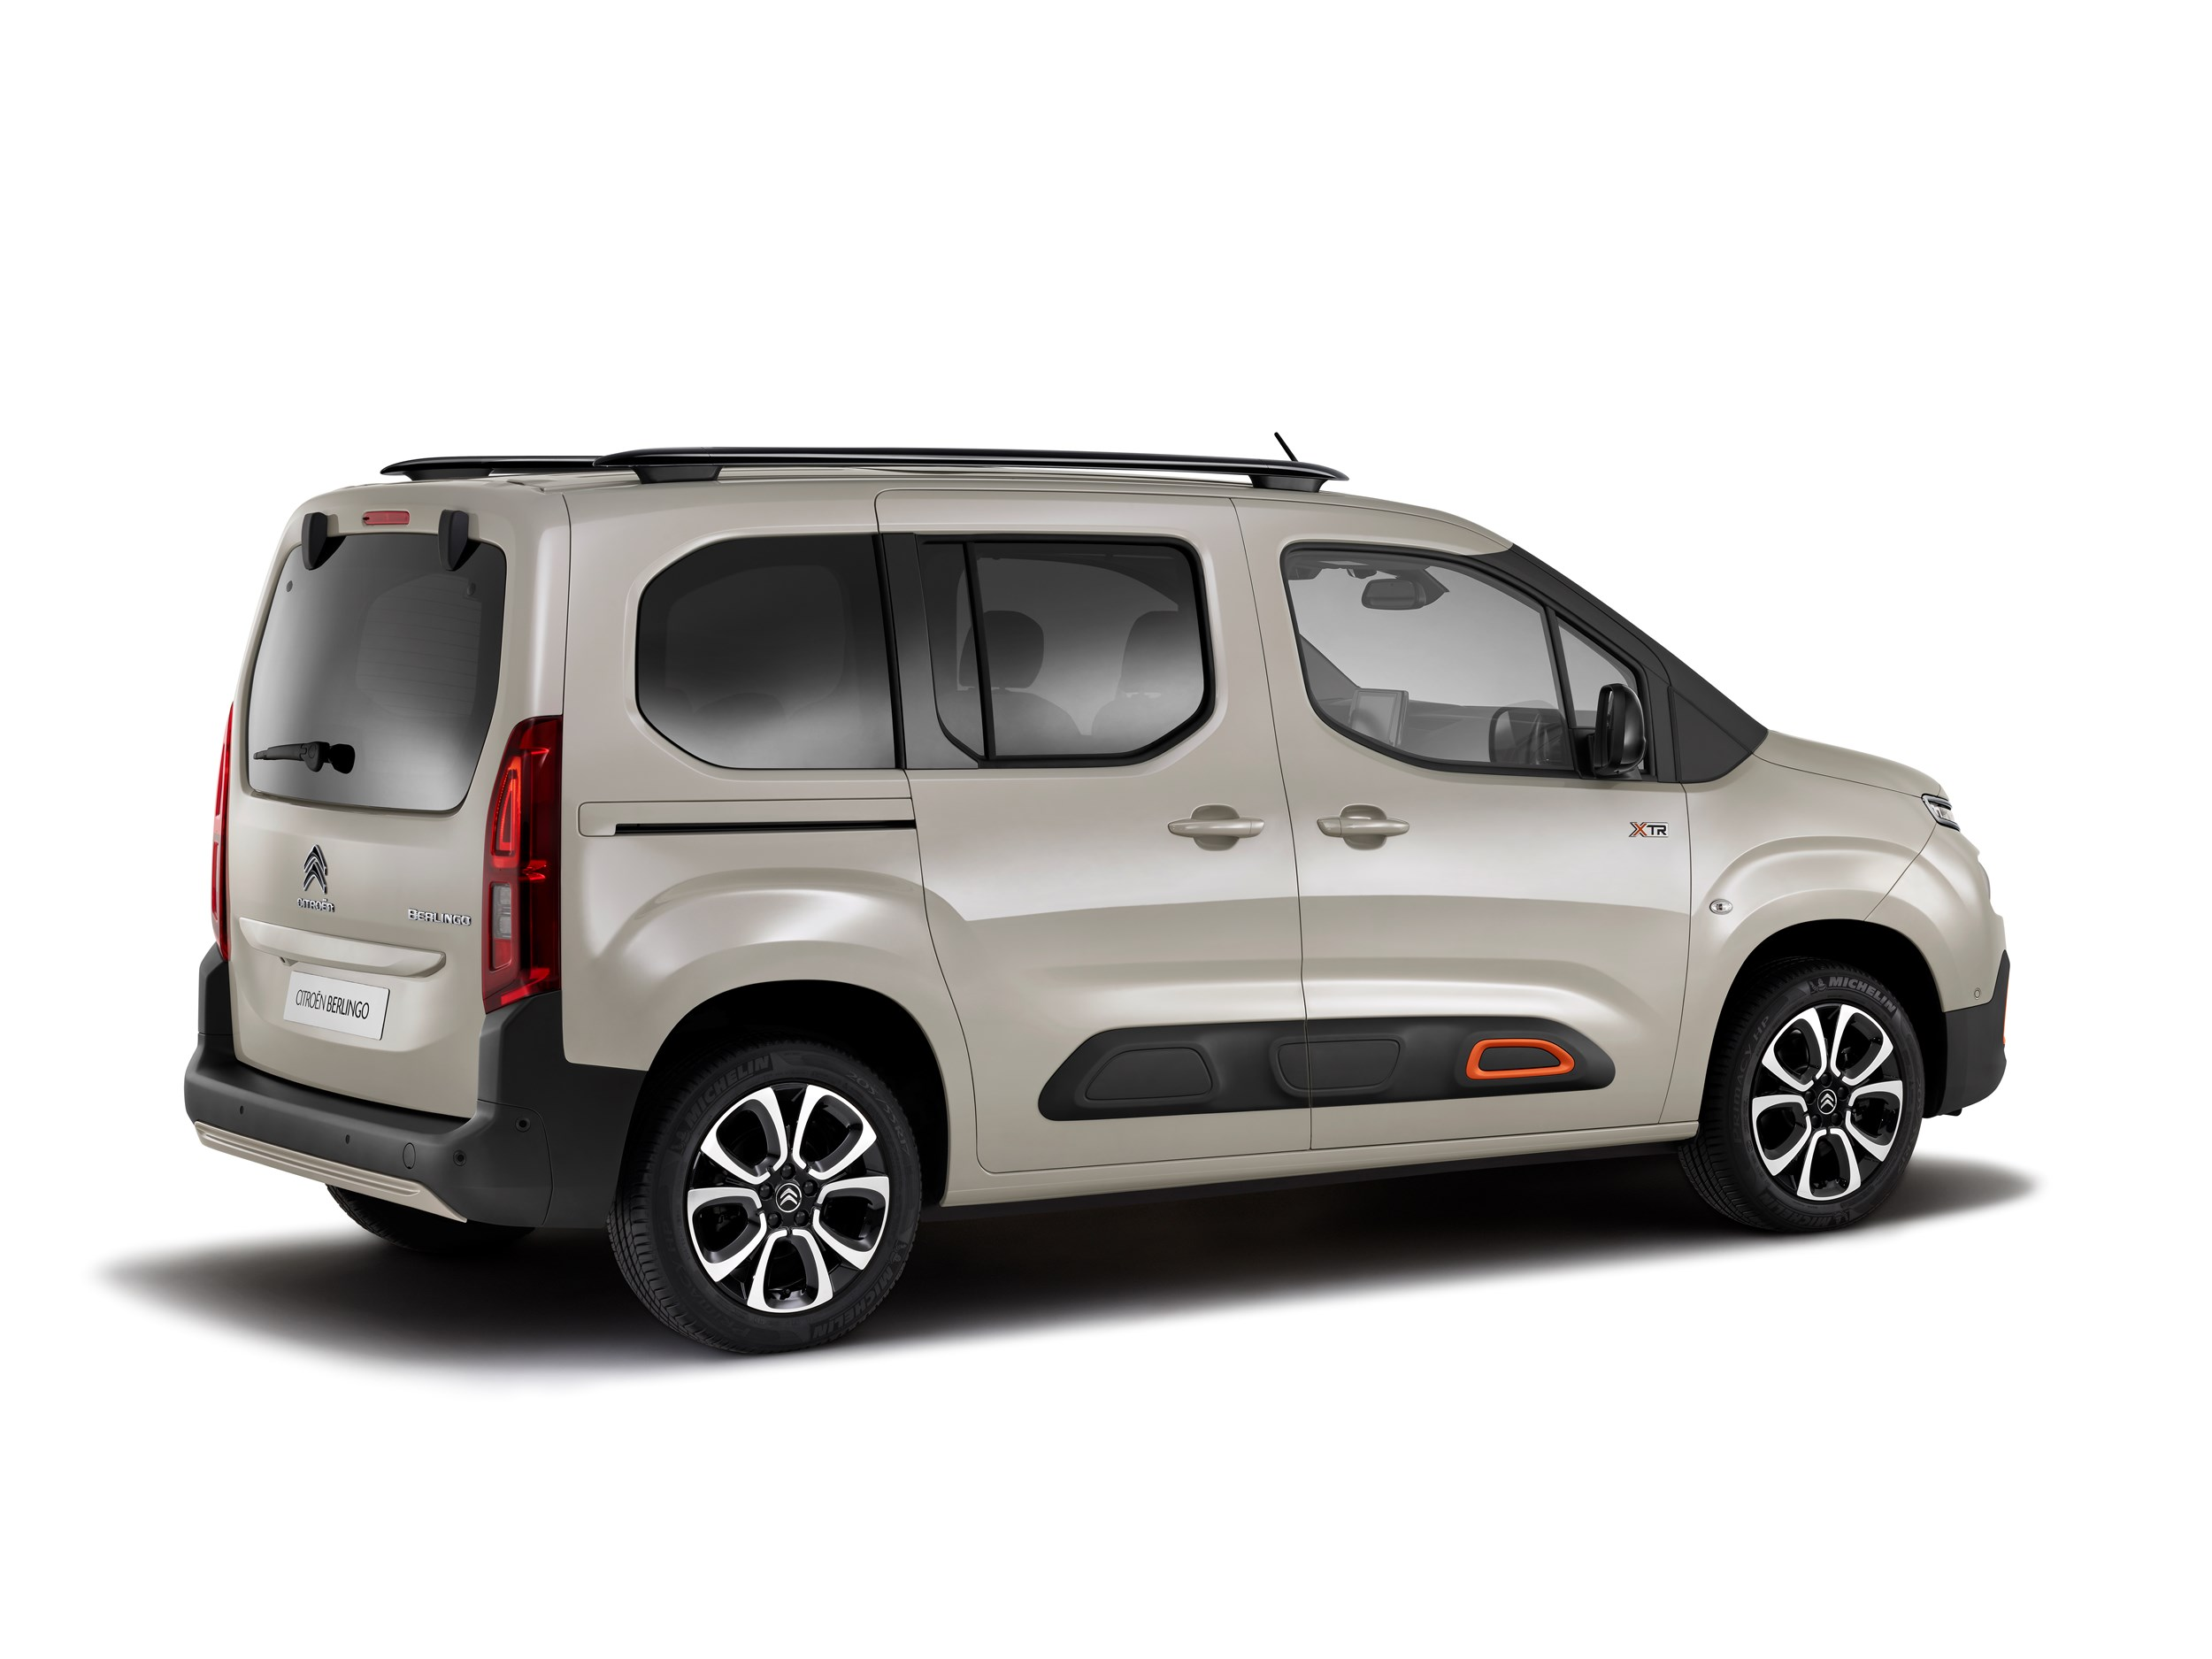 f3a2e99dad New Citroen Berlingo available to order from £18